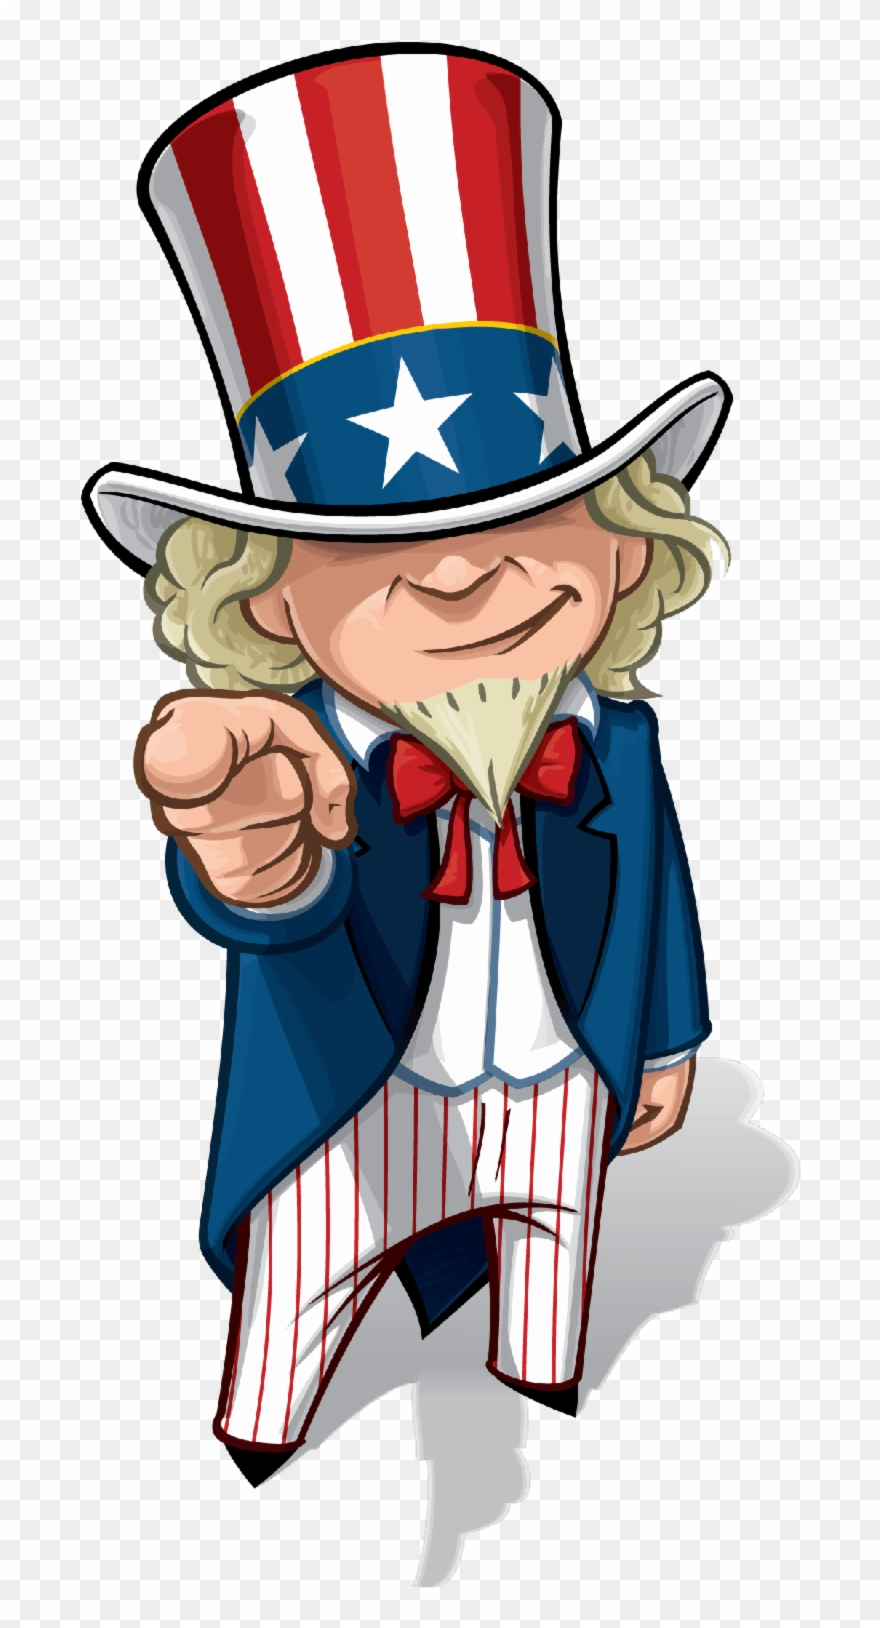 Uncle Sam Cartoon Drawing Clipart (#4928602).